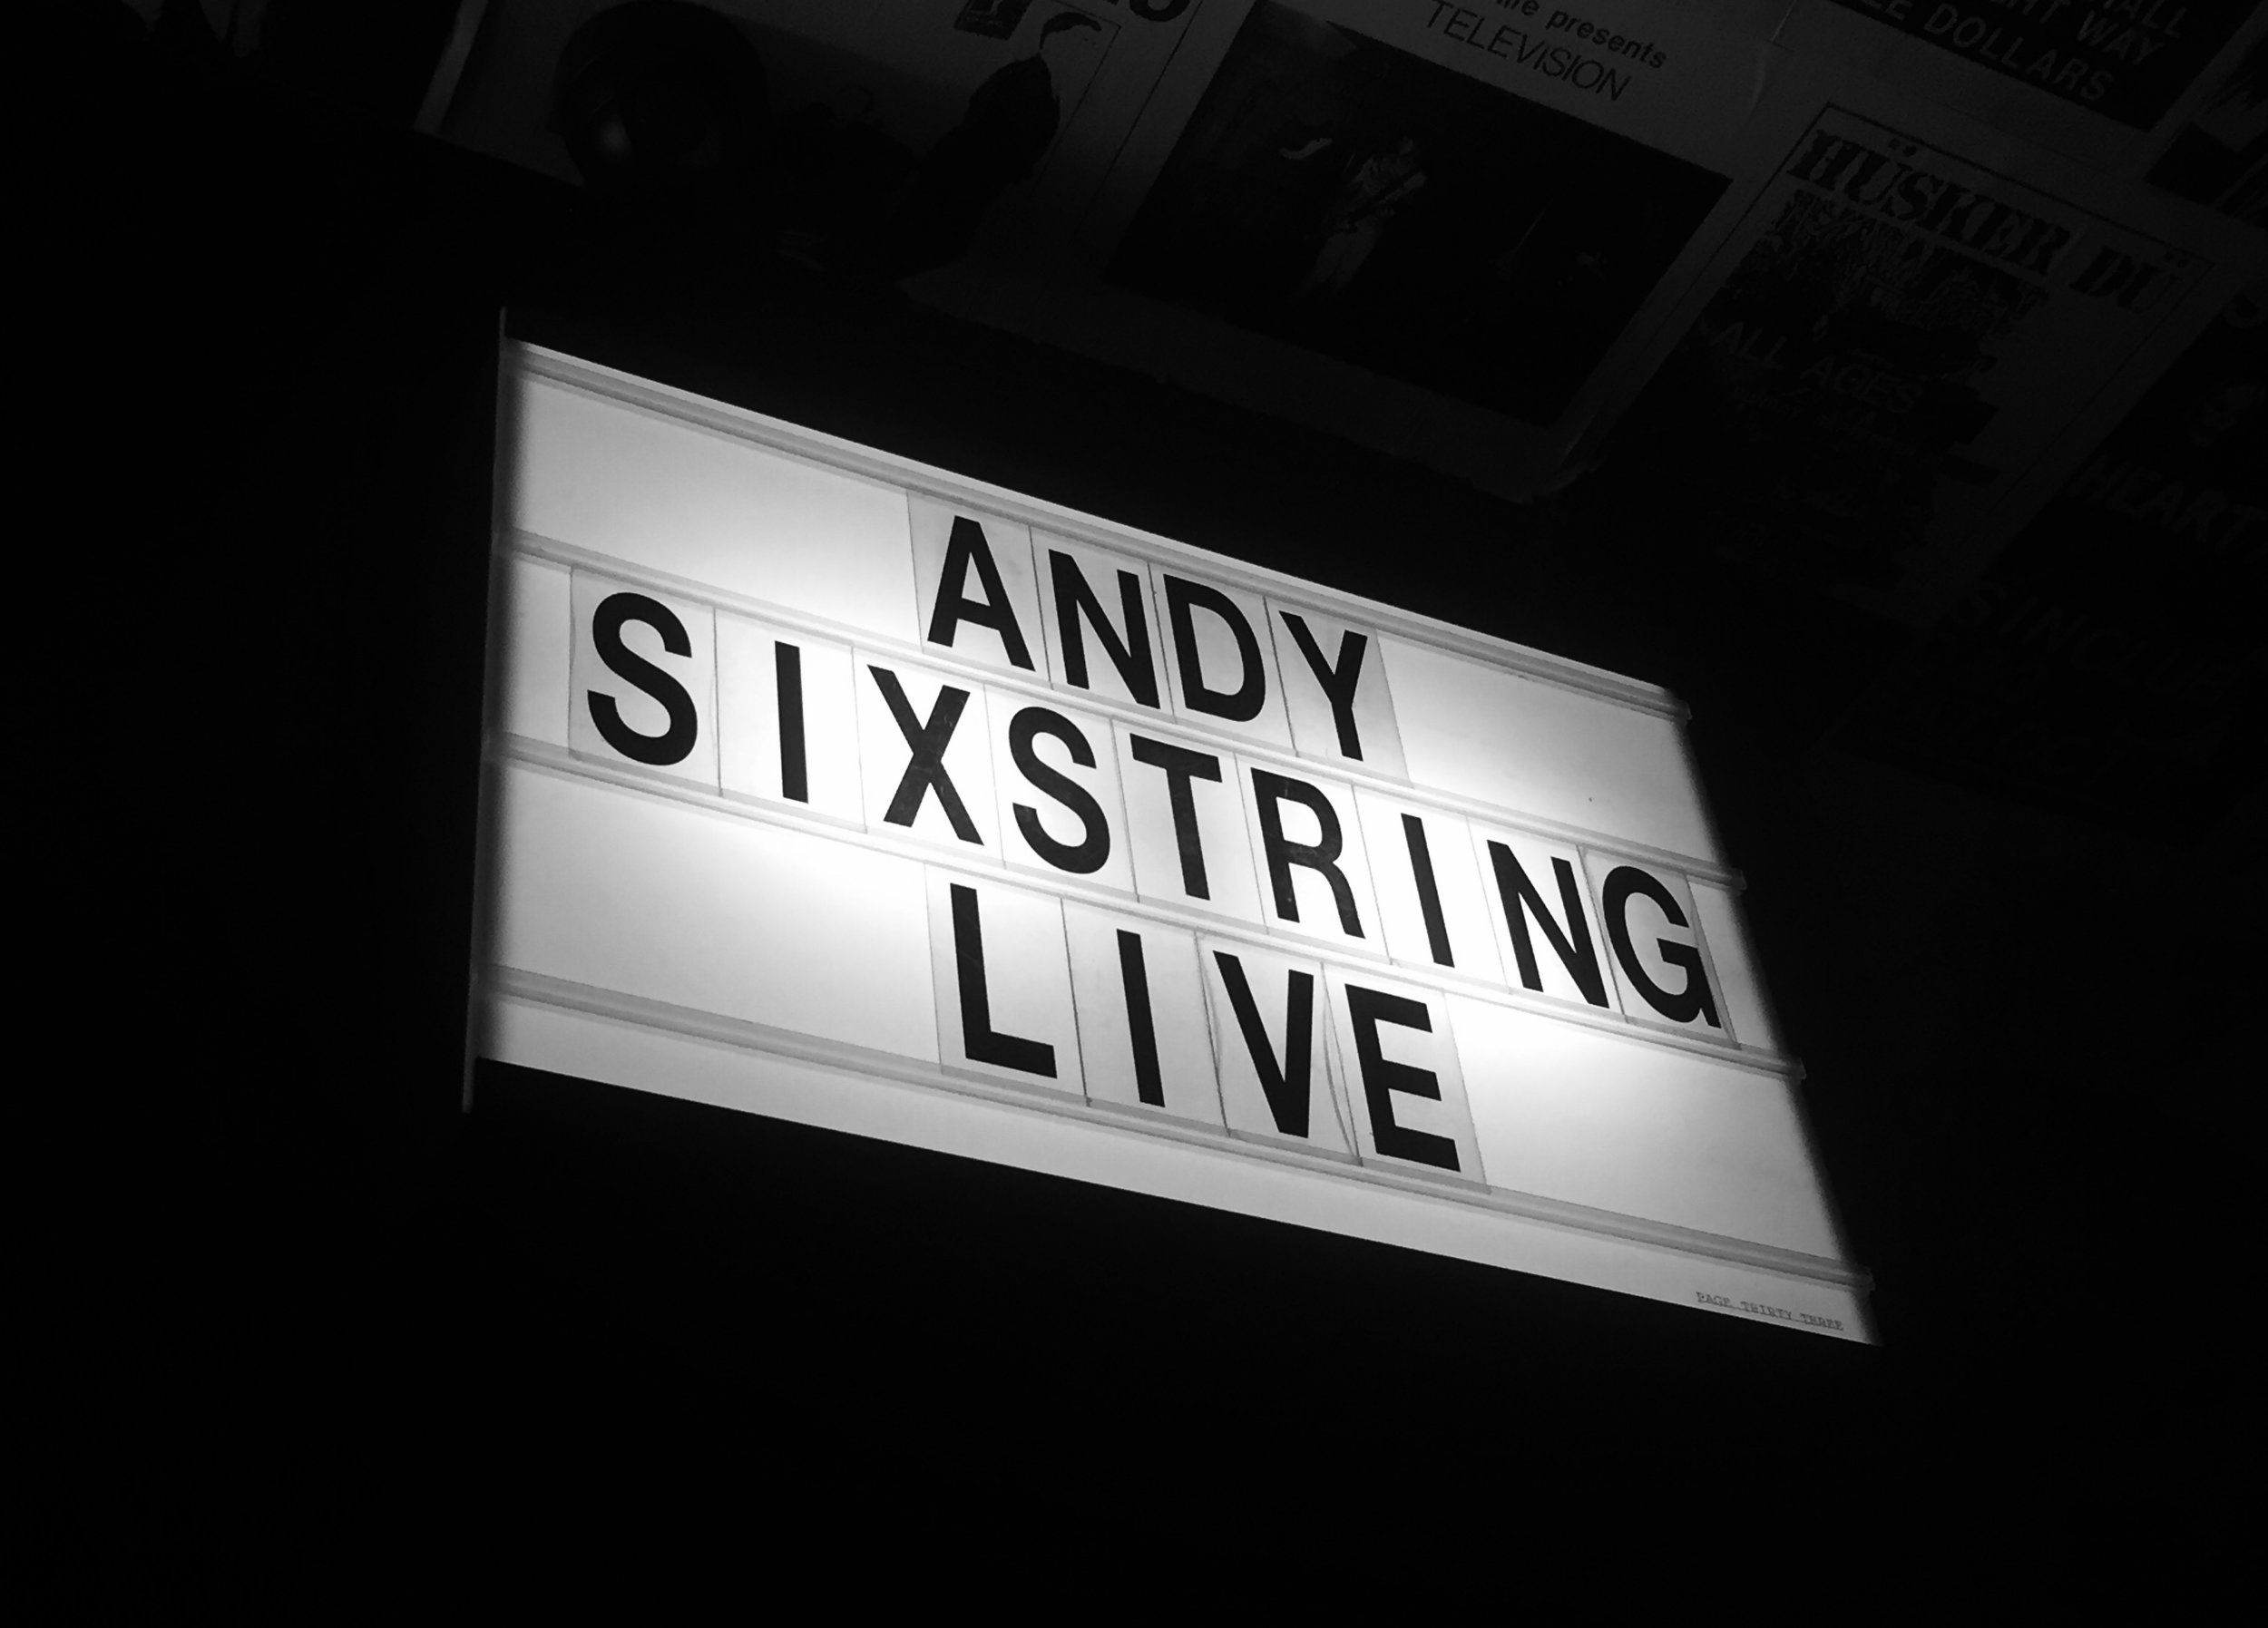 andysixstring live hanks pizza